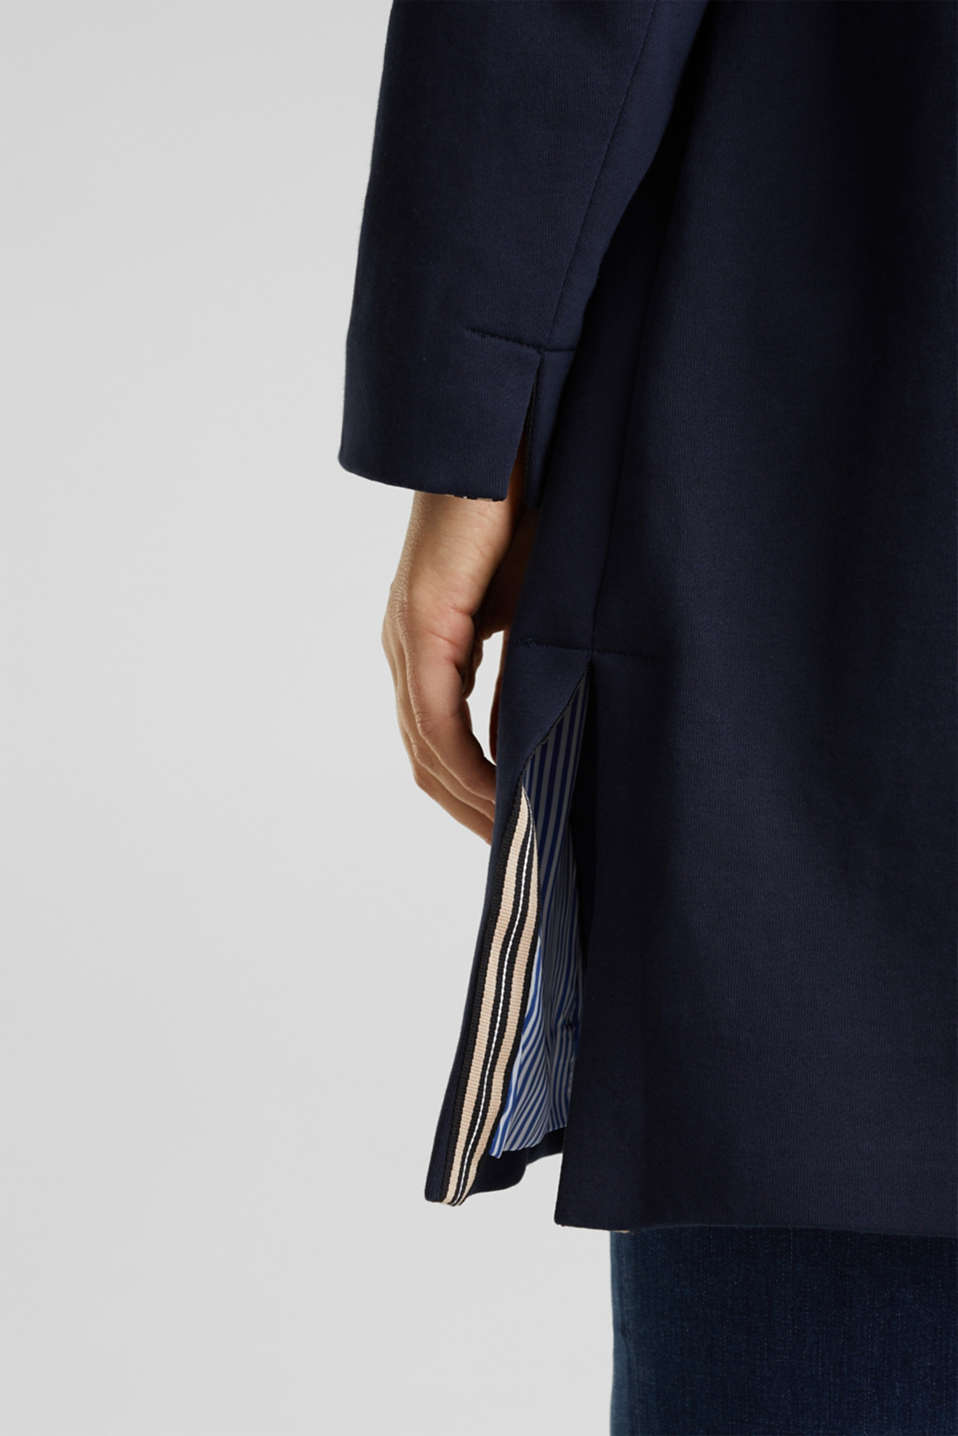 CURVY jersey coat with slits, NAVY, detail image number 5